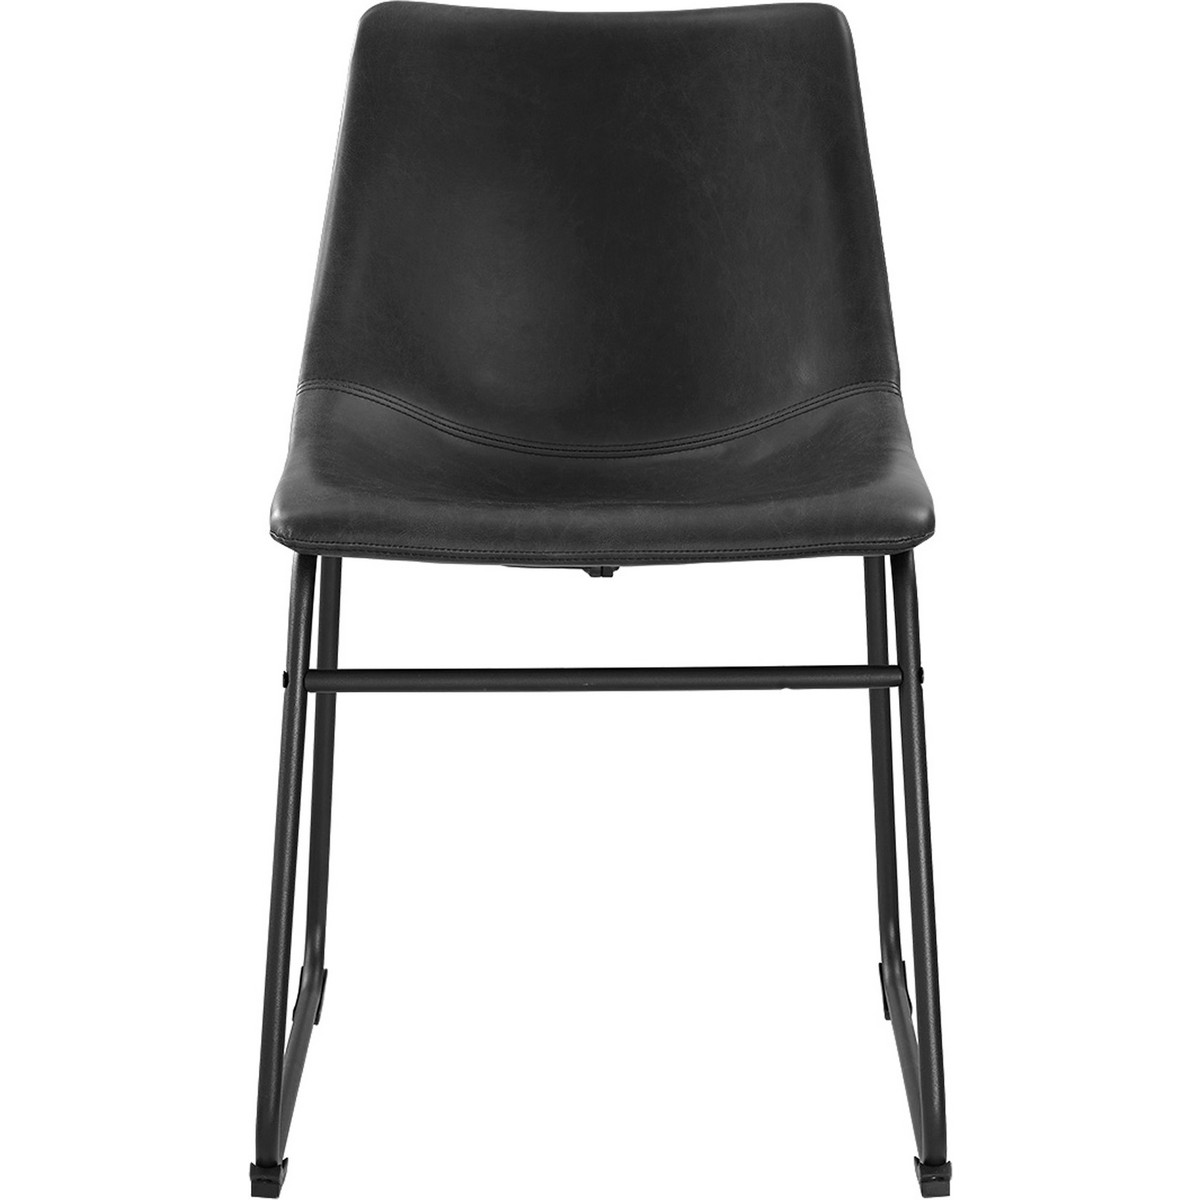 Black steel chairs - Black Leatherette Dining Chairs On Powder Coated Steel Legs Set Of 2